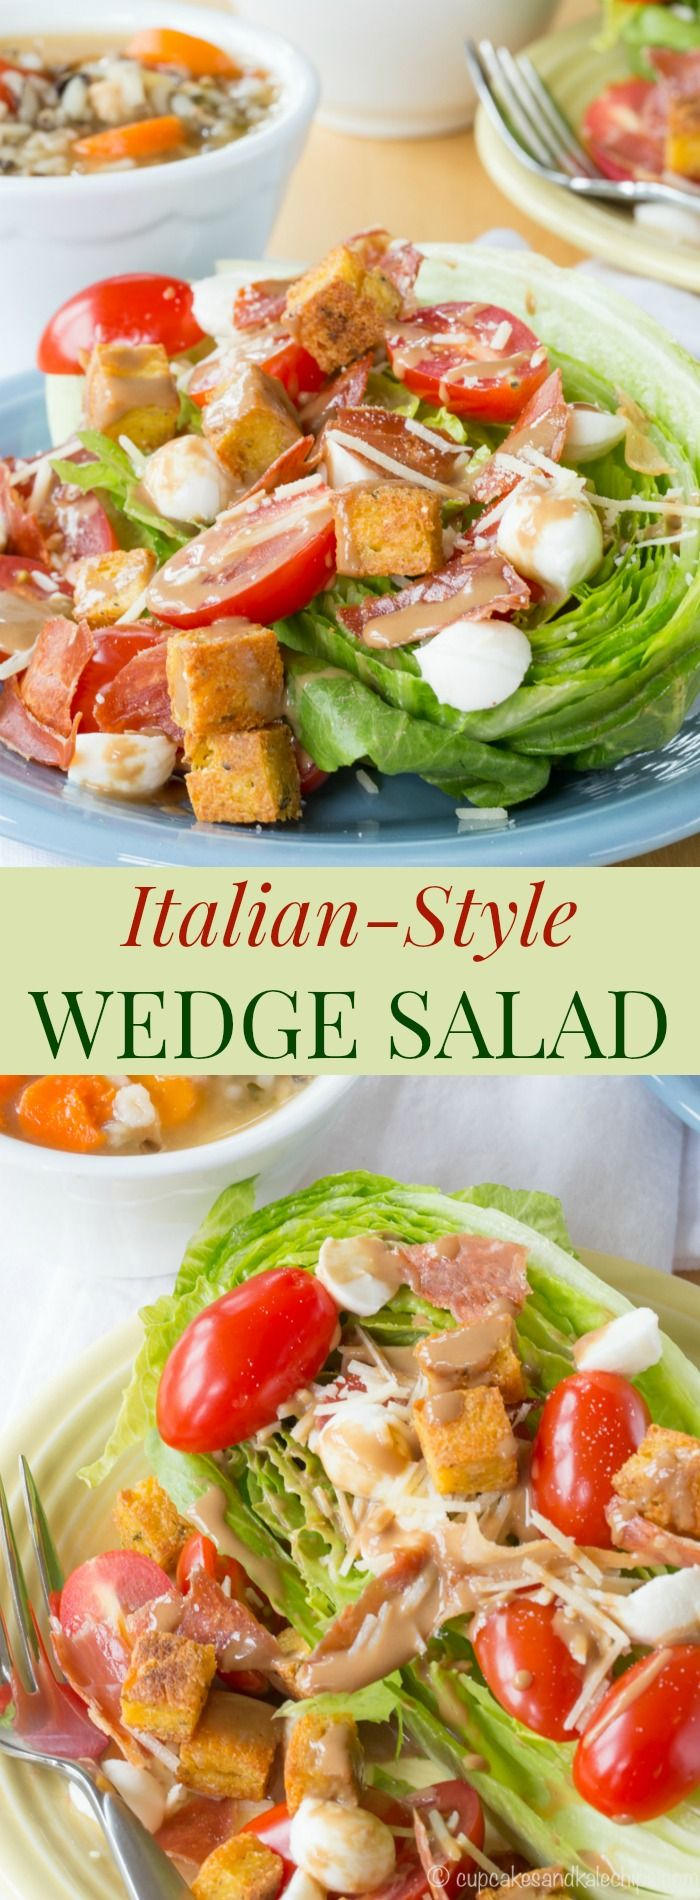 Italian-Style Wedge Salad - a simple twist on the the classic wedge salad recipe with crispy prosciutto, mozzarella, tomatoes, and creamy balsamic dressing, plus gluten free polenta croutons. Pair with @progresso to #SoupYourWay